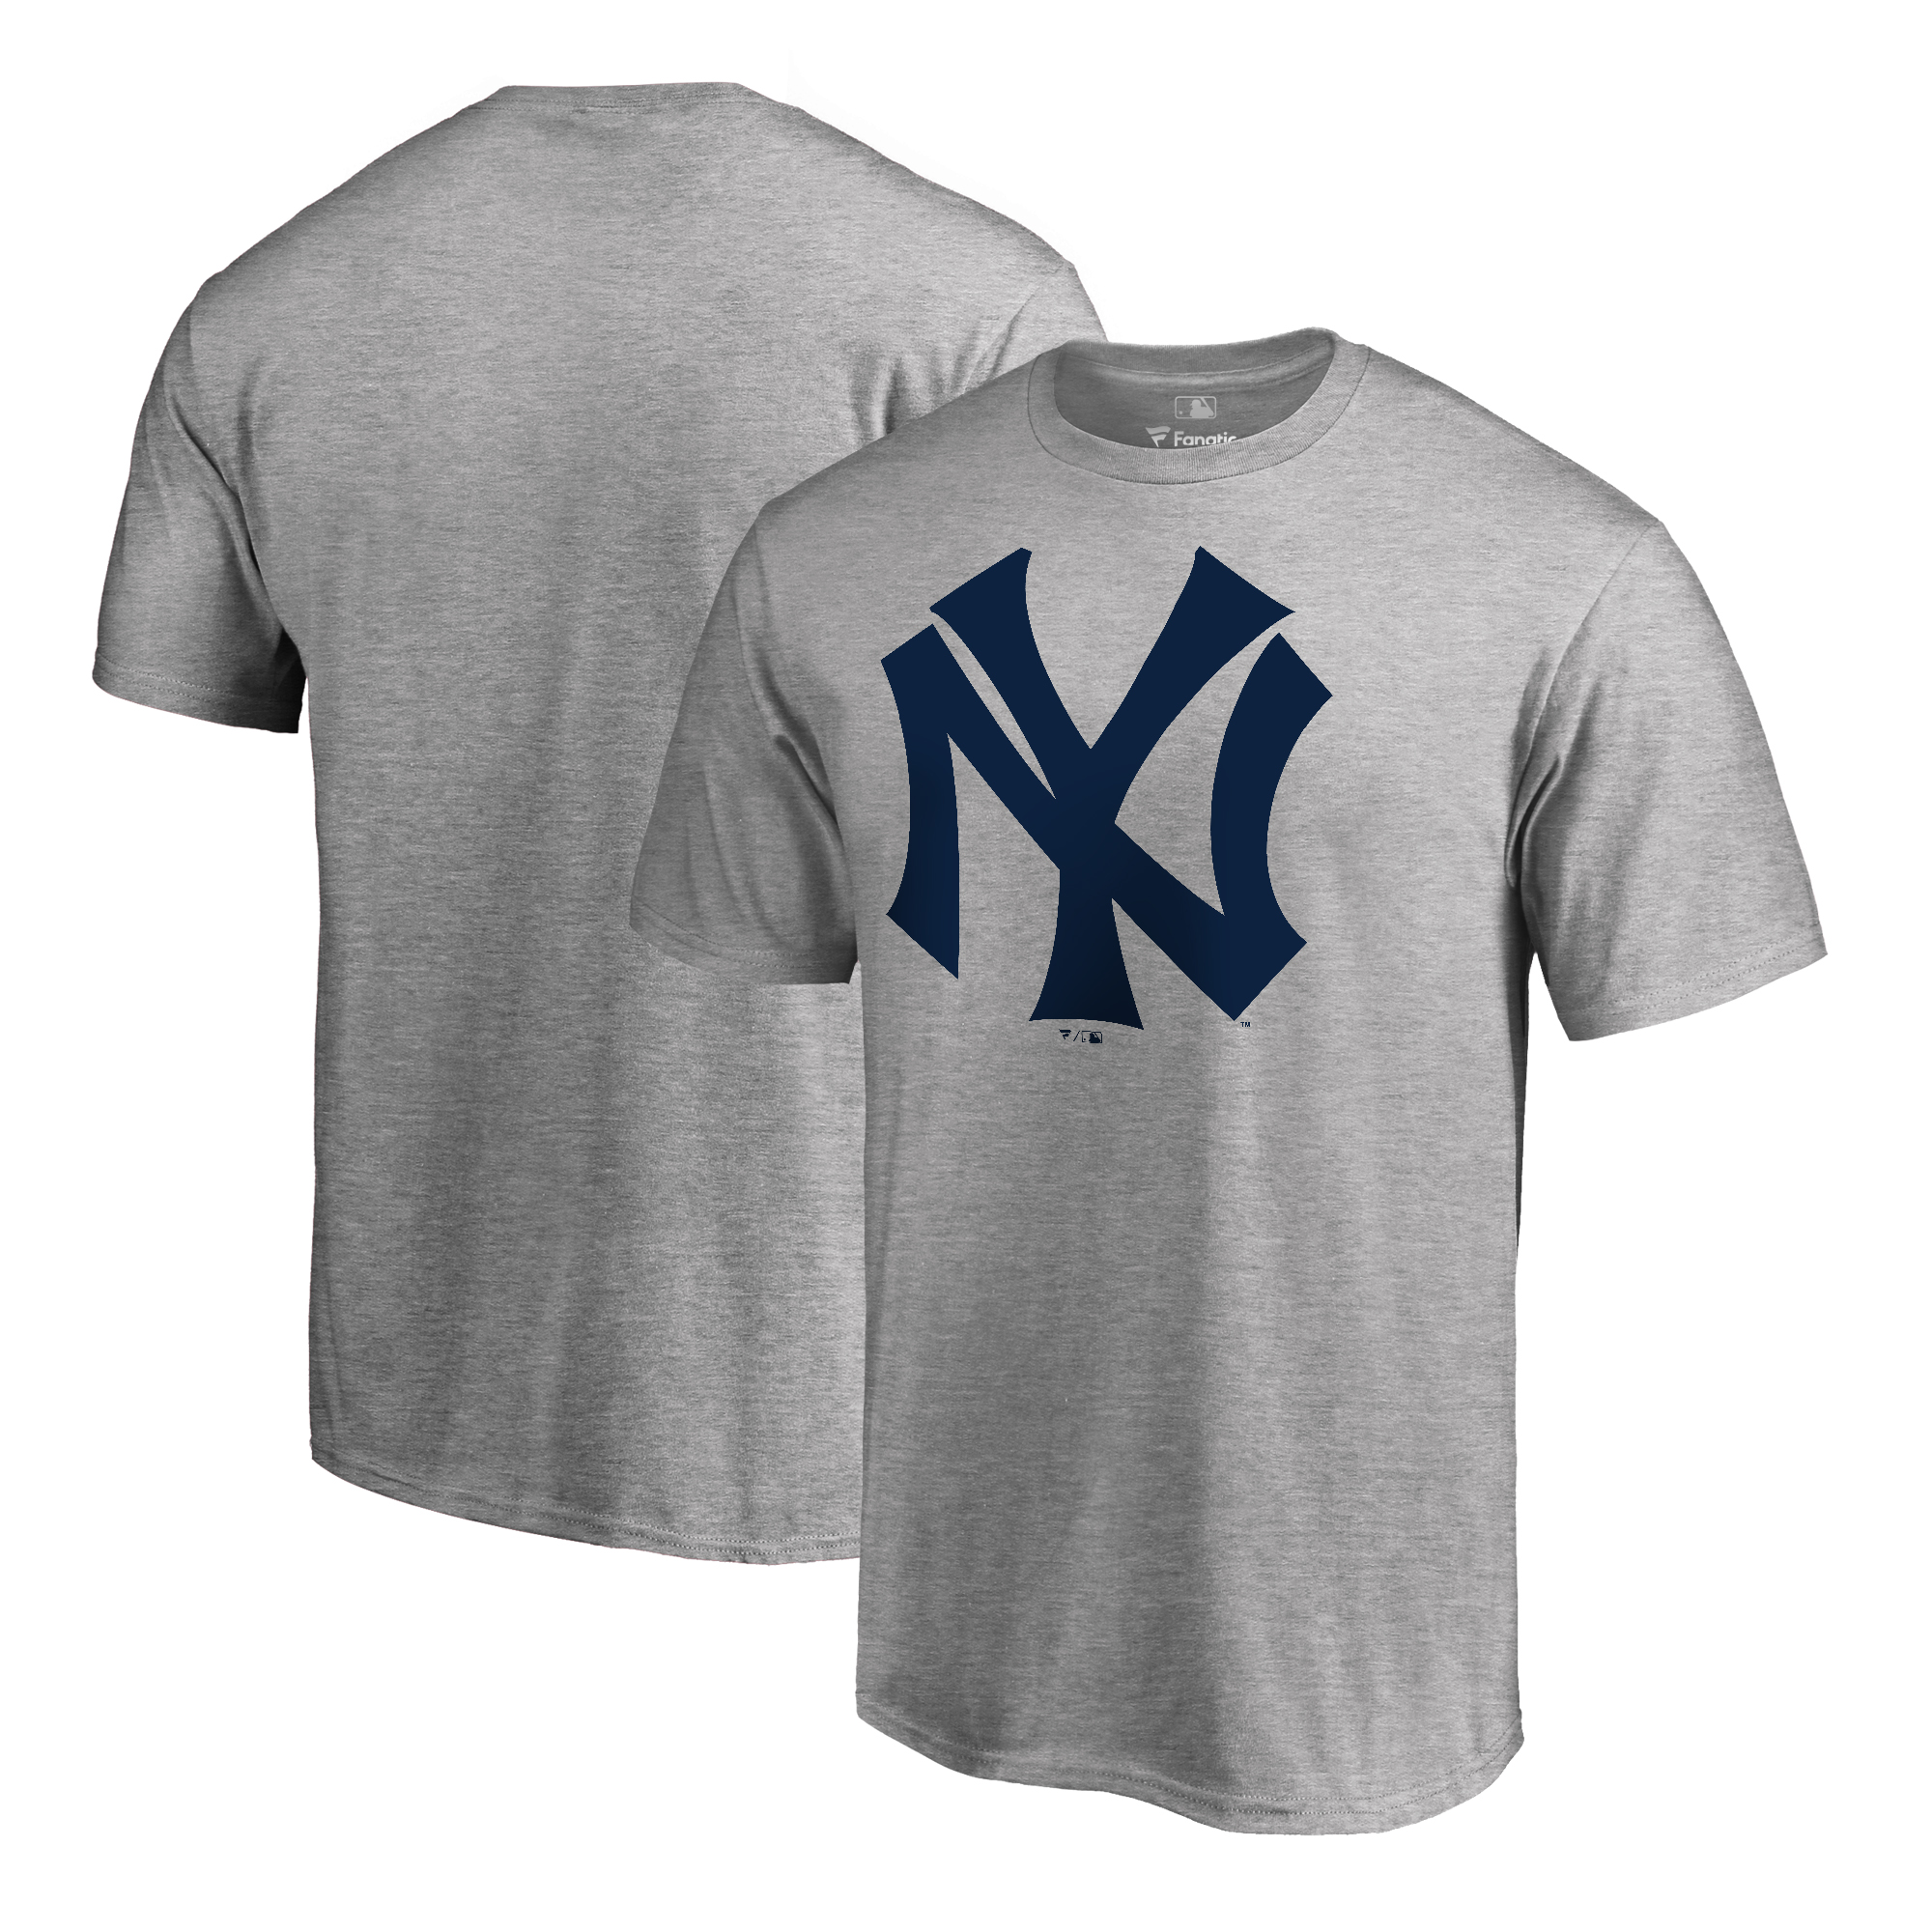 New York Yankees Fanatics Branded Big & Tall Cooperstown Collection Huntington T-Shirt - Ash